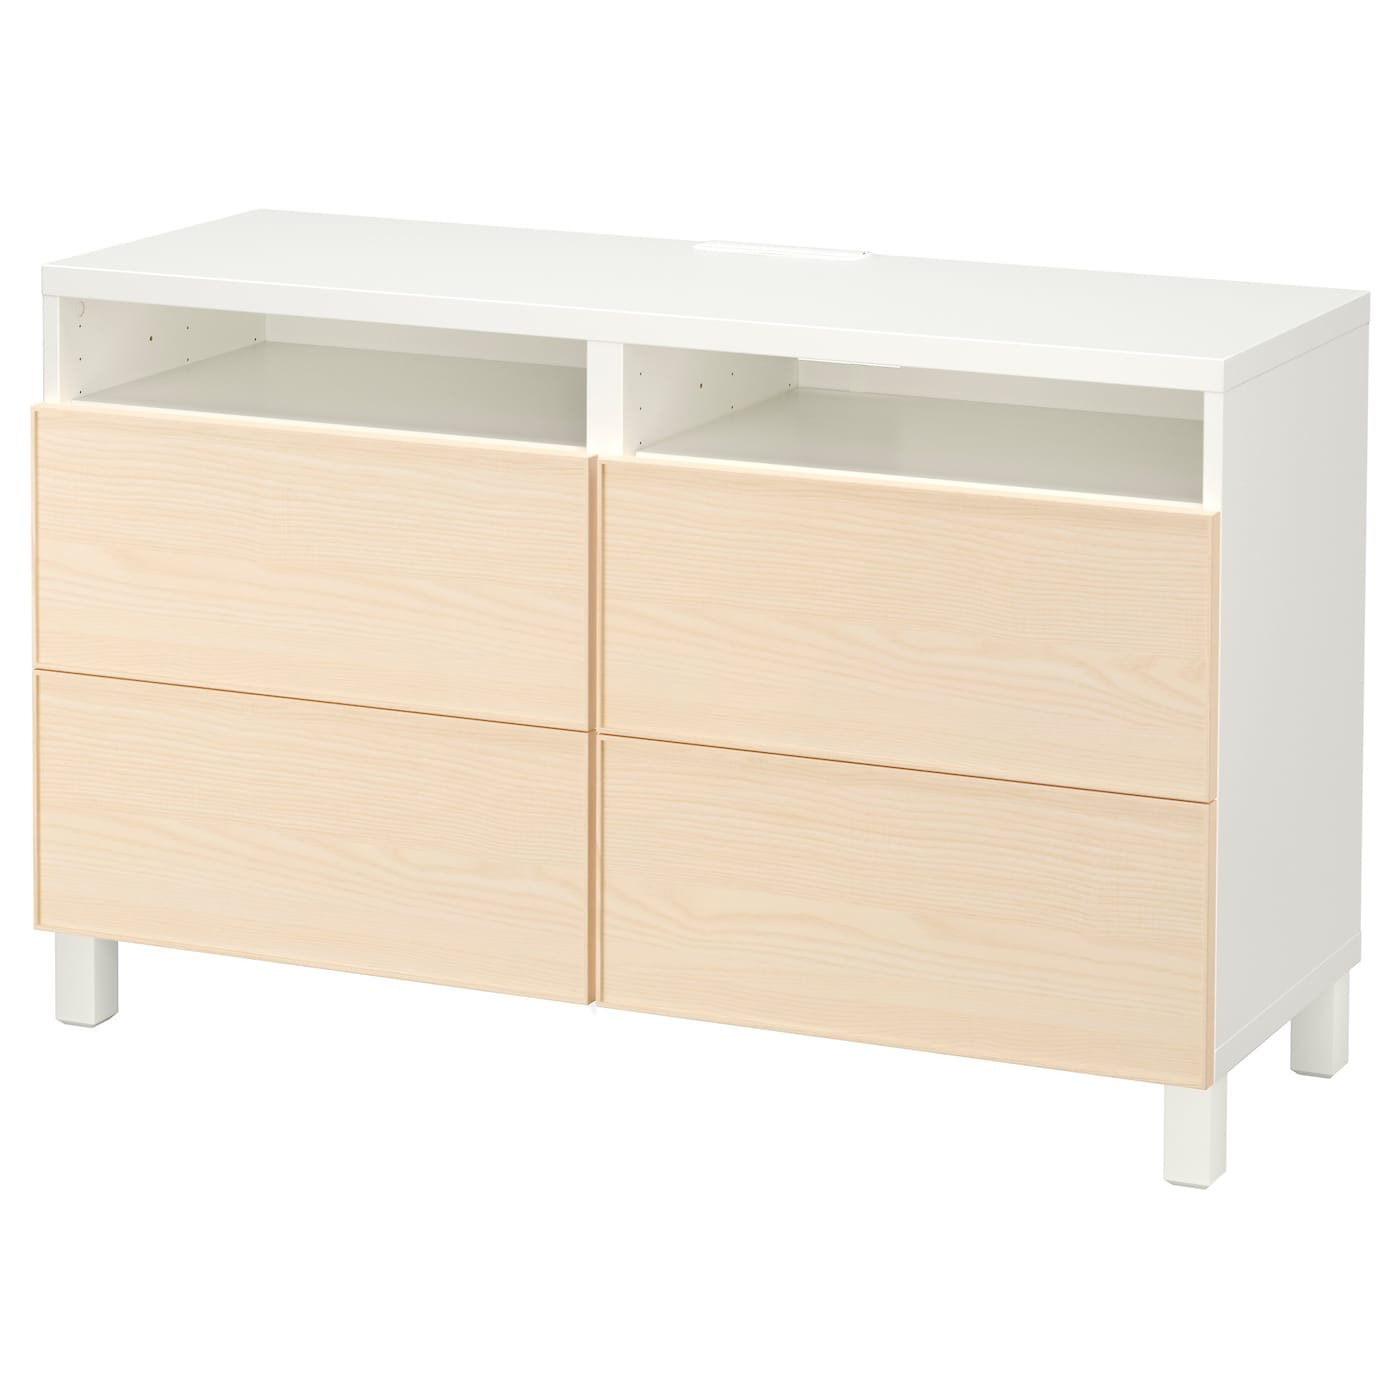 Best Tv Bench With Drawers White Inviken Ash Veneer 120x40x74 Cm Ikea